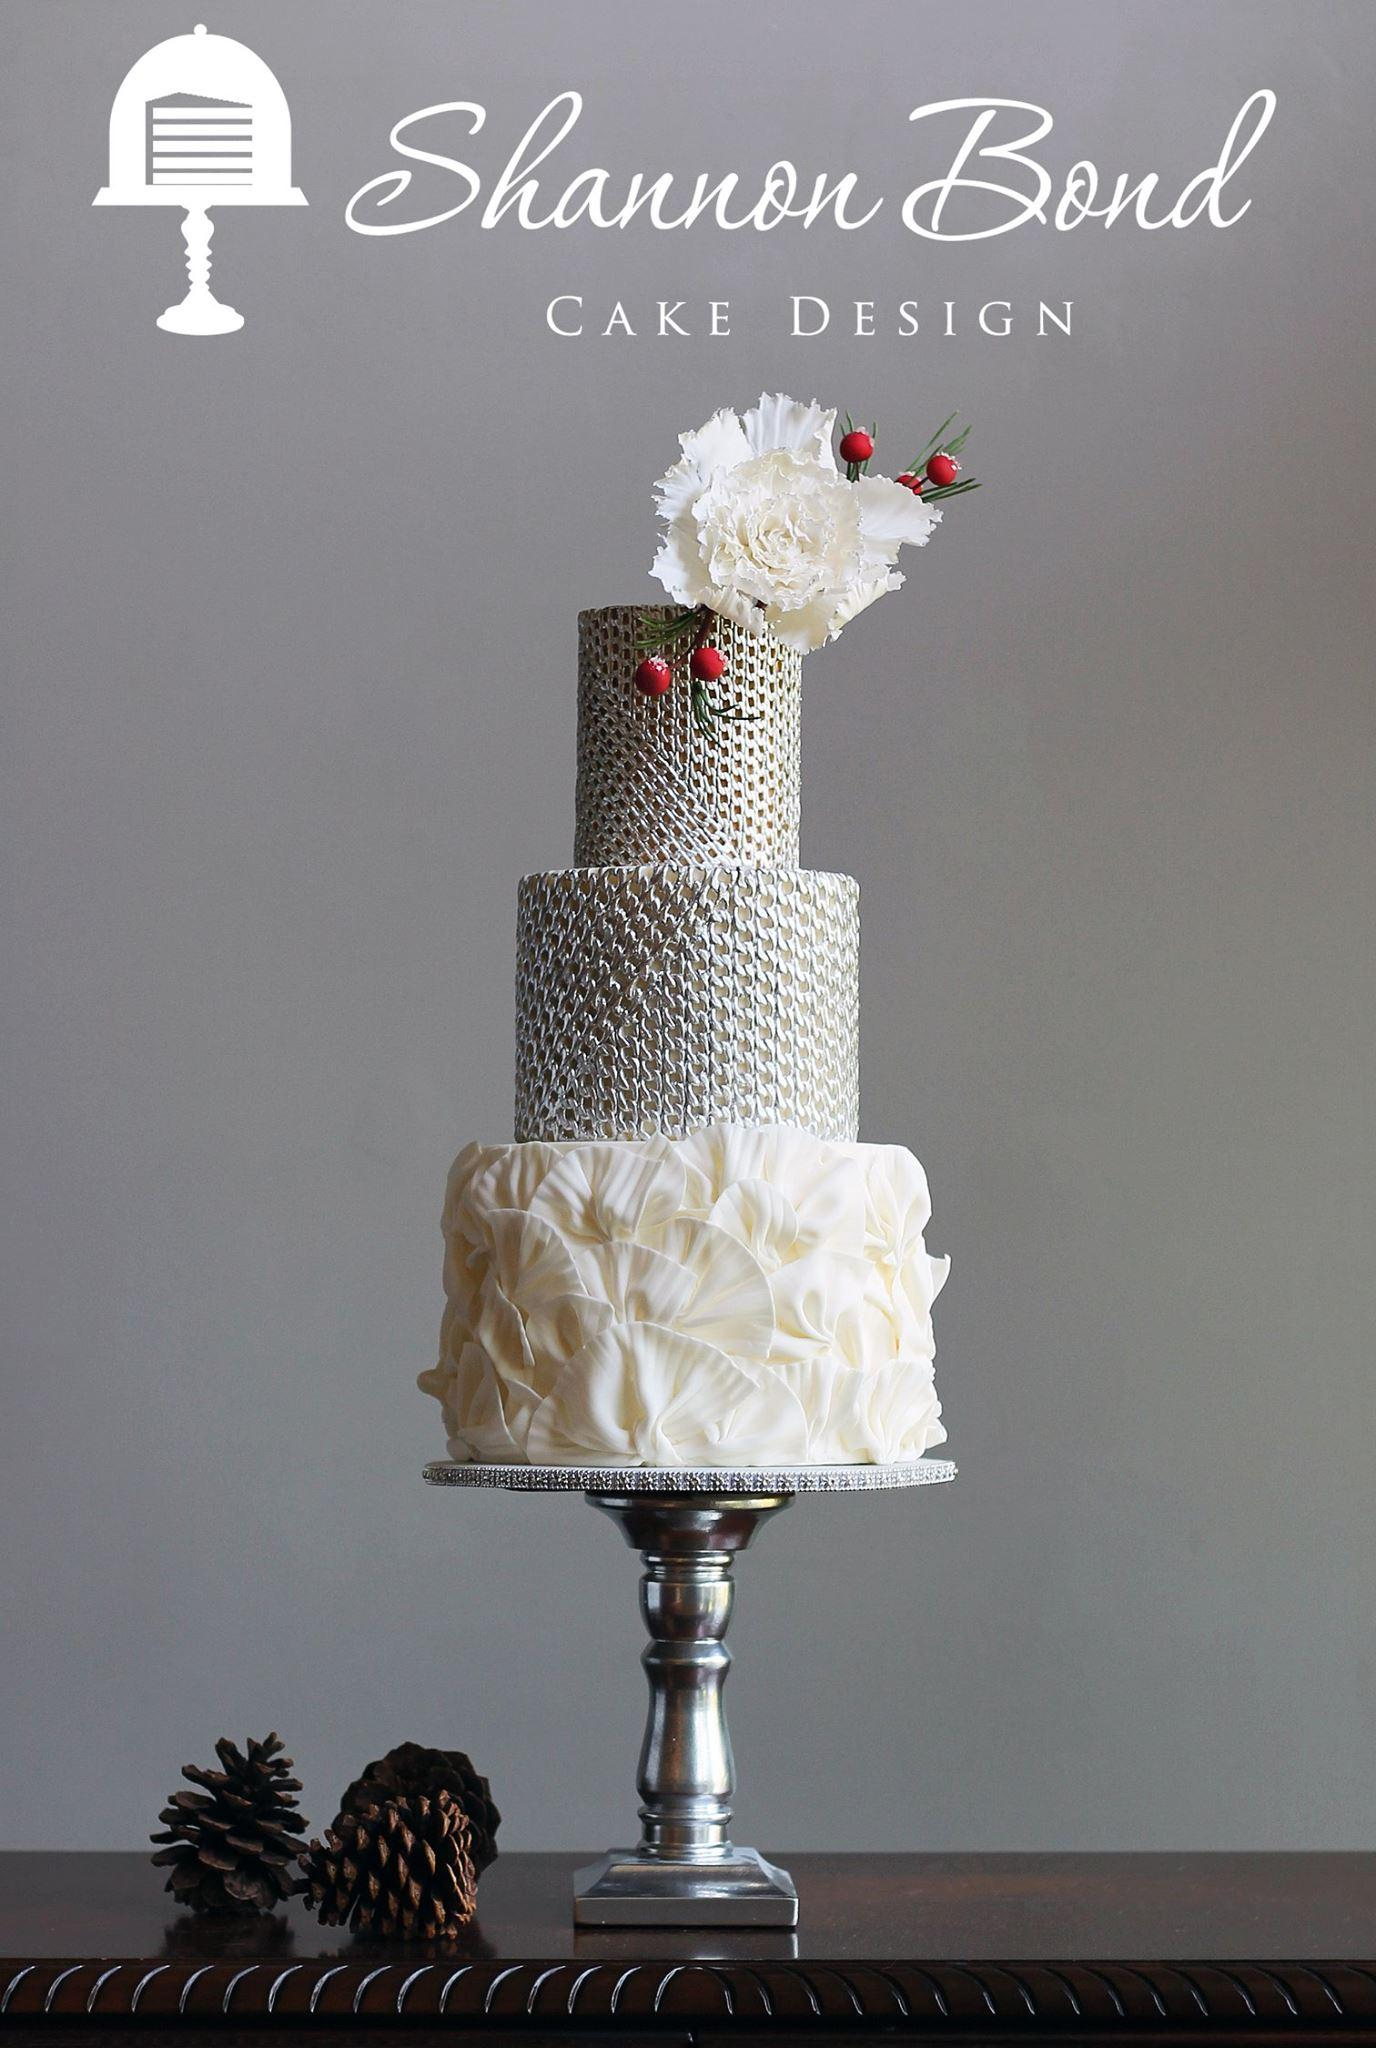 Silver sparkle and white fondant Christmas wedding cake